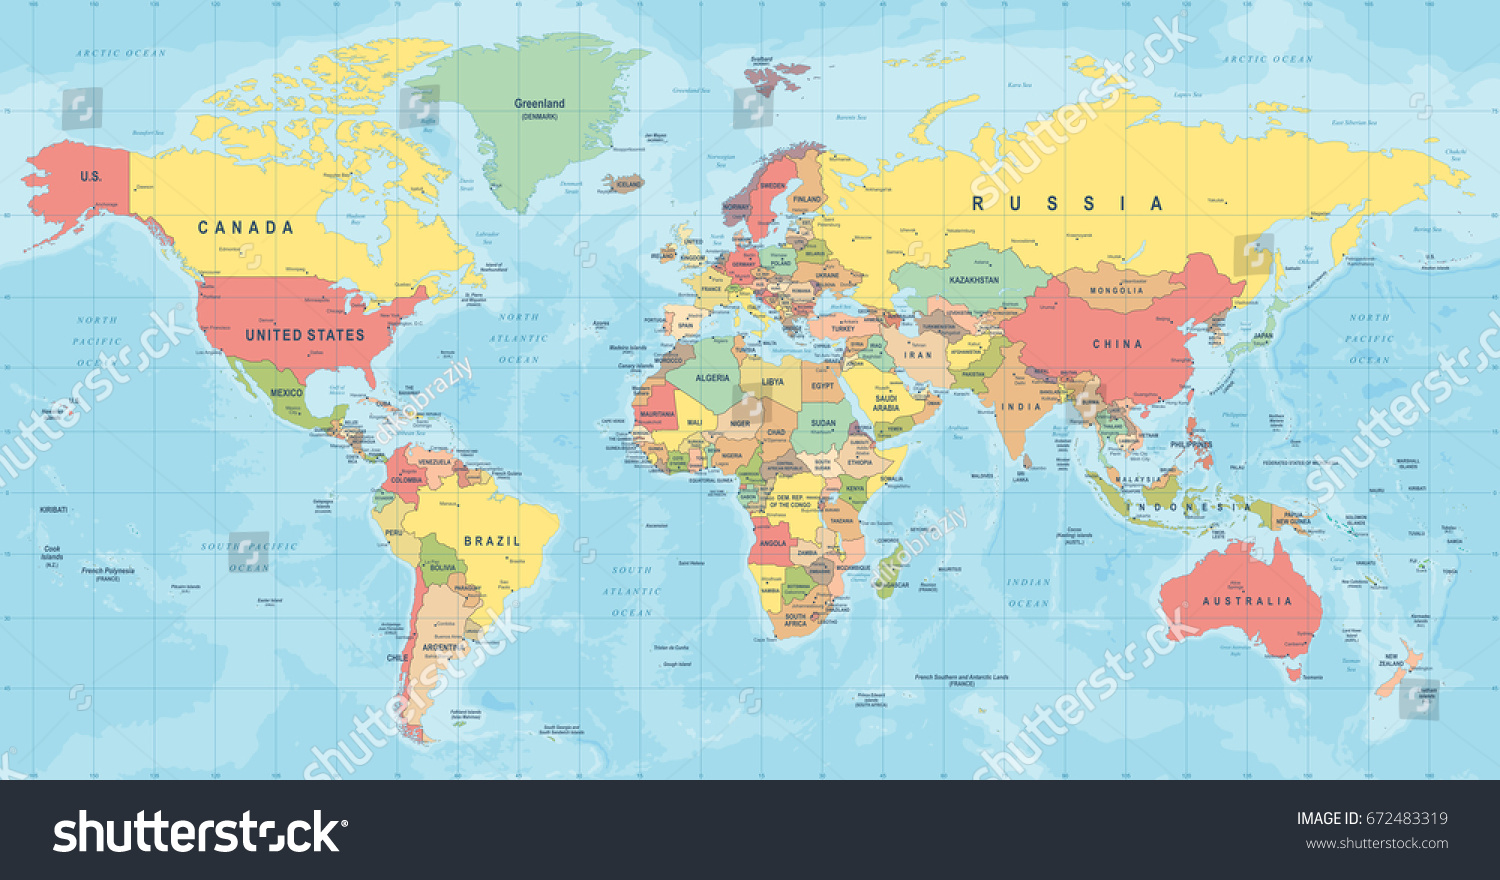 World map vector high detailed illustration vectores en stock world map vector high detailed illustration of worldmap gumiabroncs Image collections